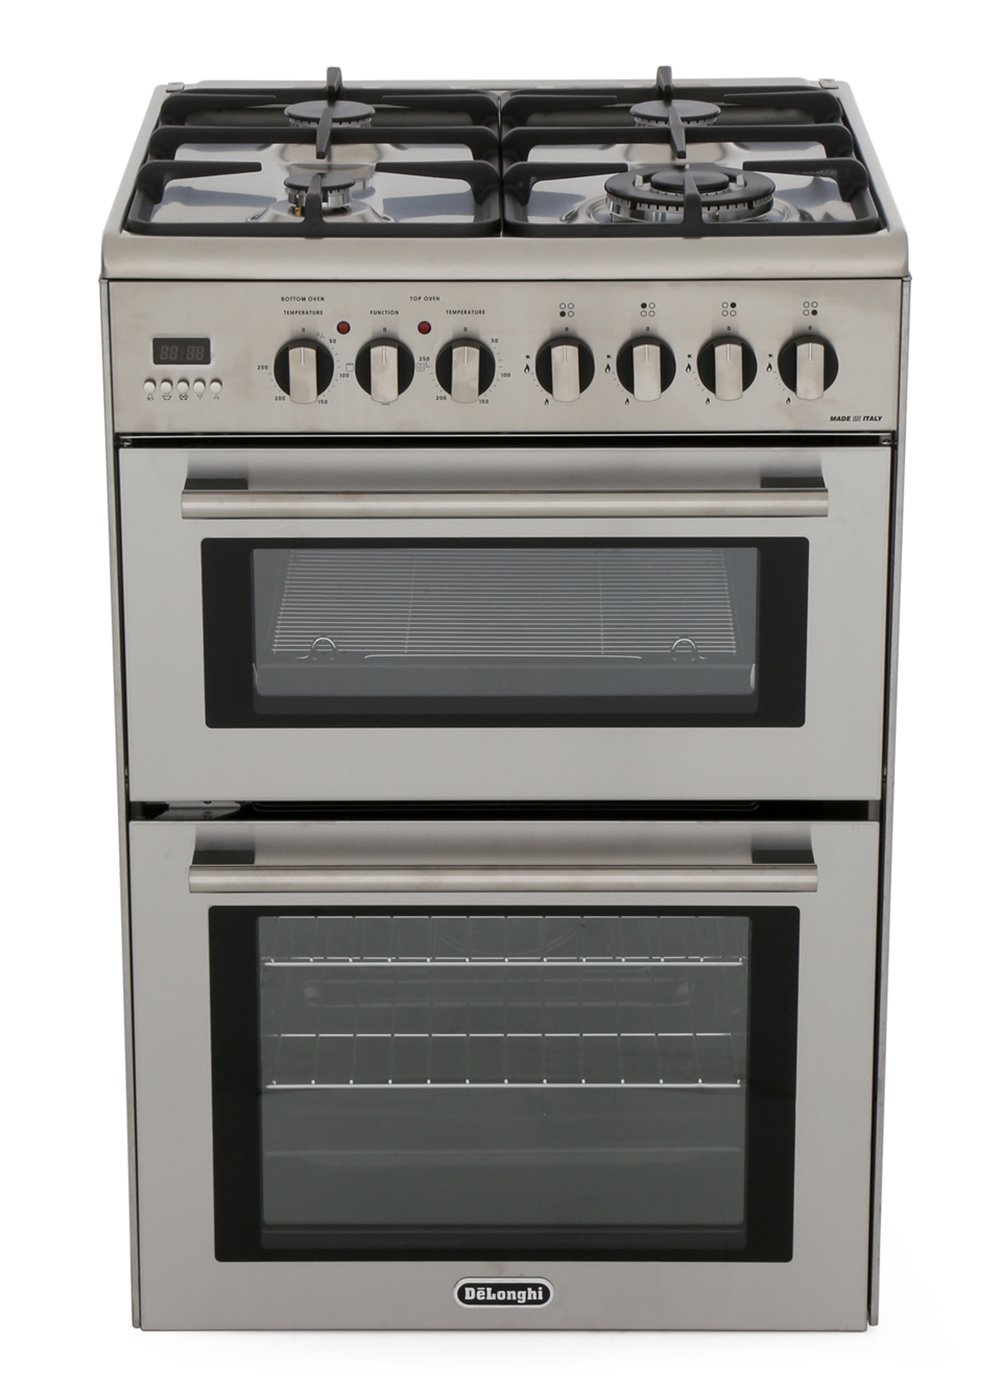 DeLonghi DDC 606-DF Dual Fuel Cooker